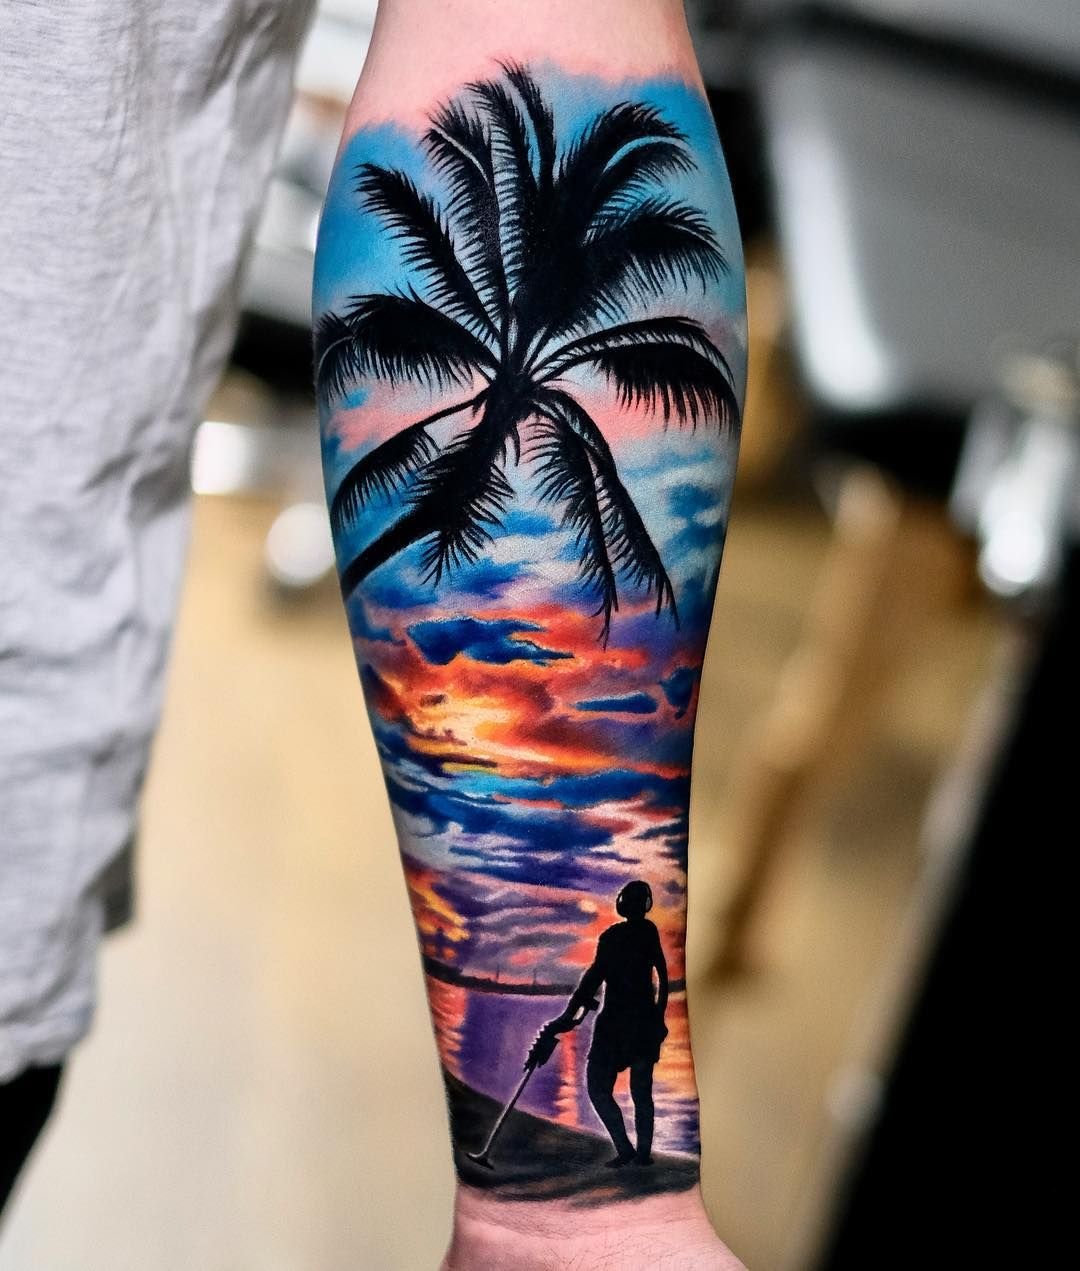 Tattoo artist Volkan Demirci Ocean tattoos, Palm tattoos